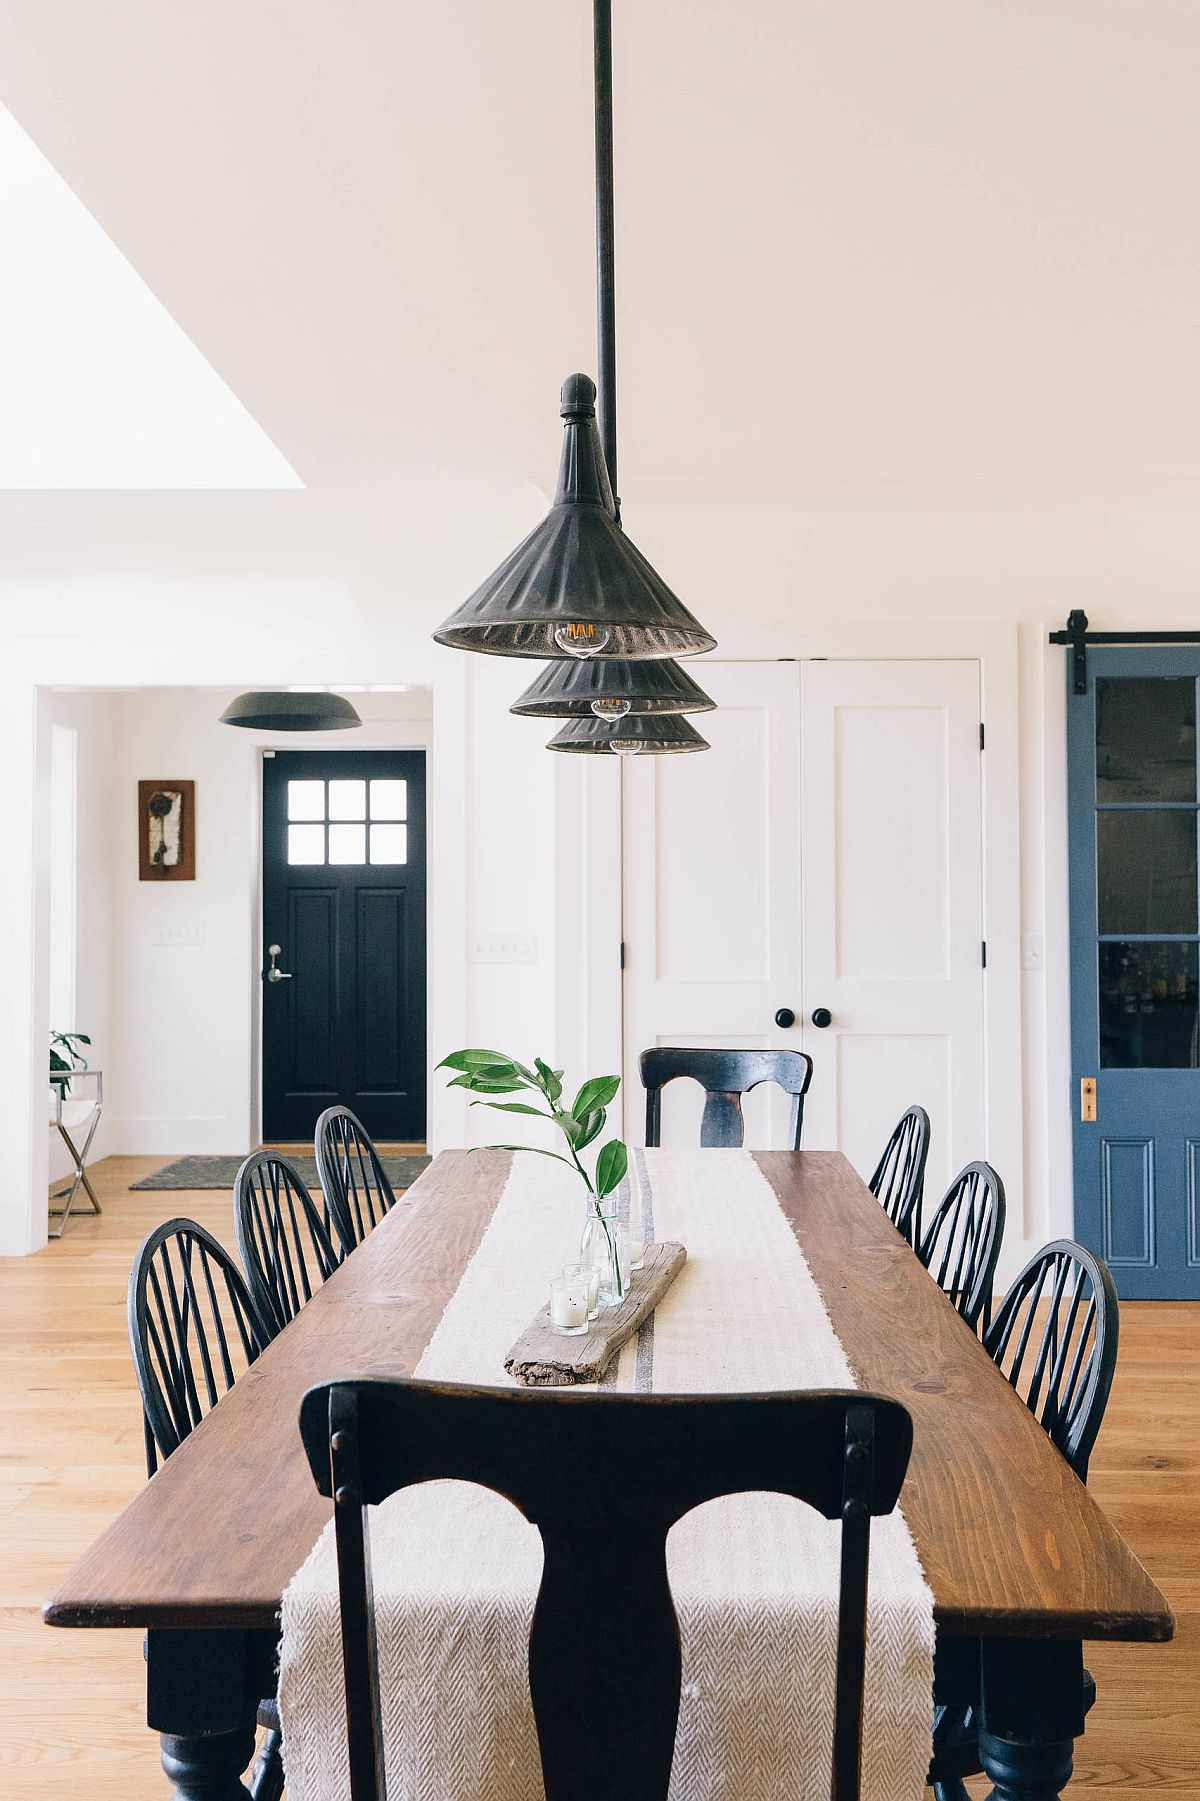 Pendant light and large wooden table brig industrial and farmhouse touches to this dining area